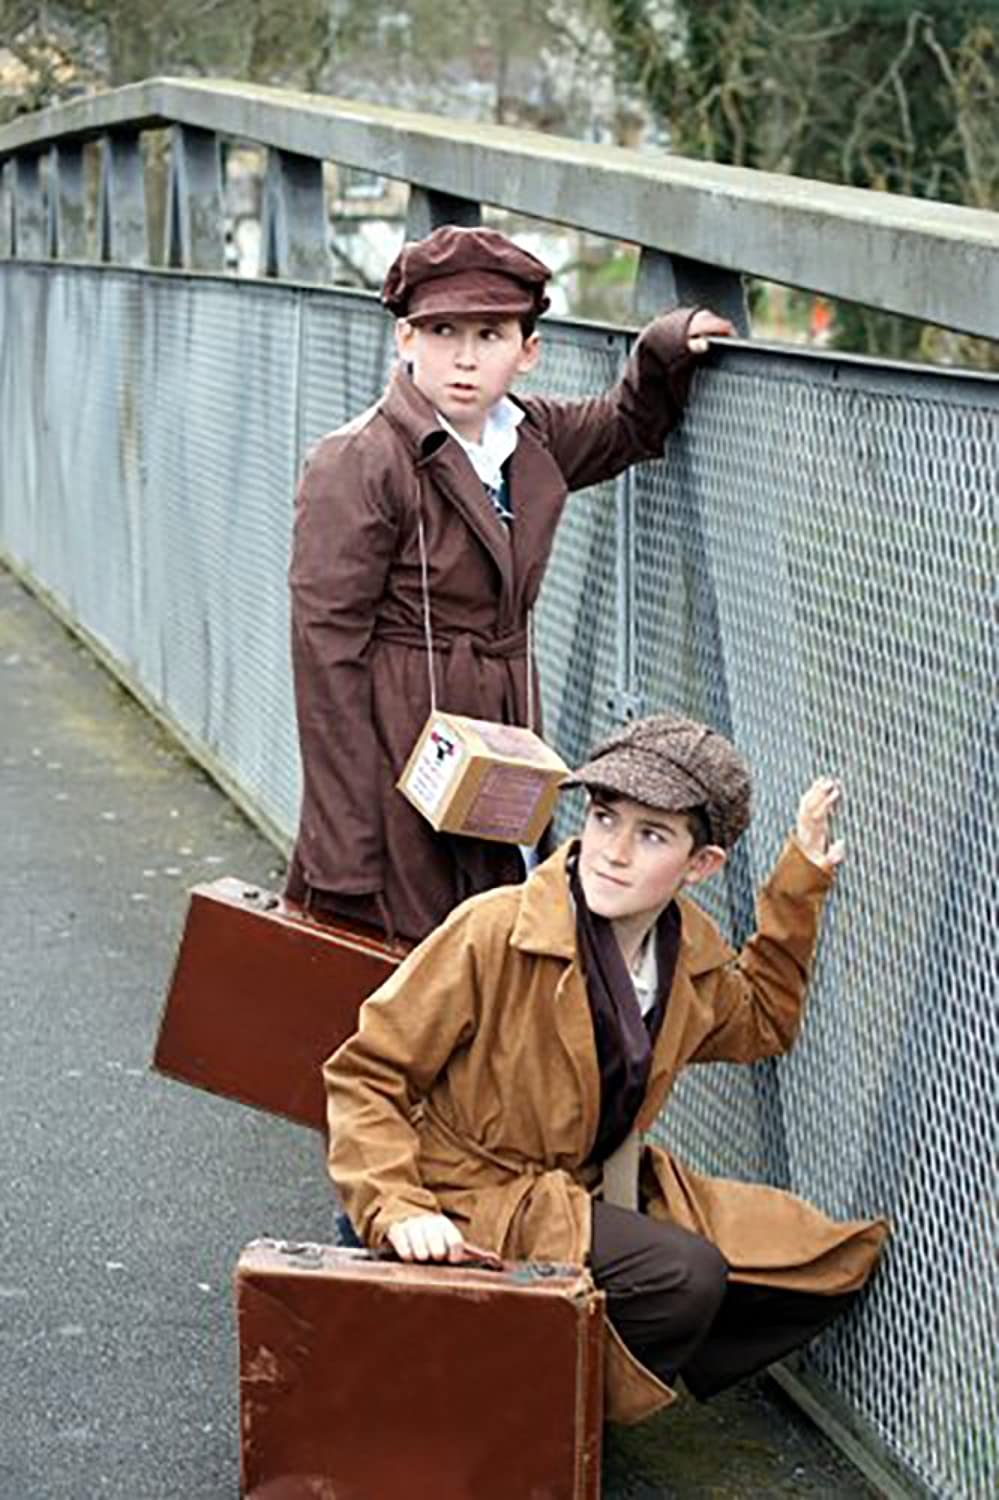 1940s Children's Clothing: Girls, Boys, Baby, Toddler 1940s-WW2-Wartime TAN EVACUEE BOY INCLUDES COAT GAS MASK BOX & CAP World Book Day Fancy Dress $36.99 AT vintagedancer.com